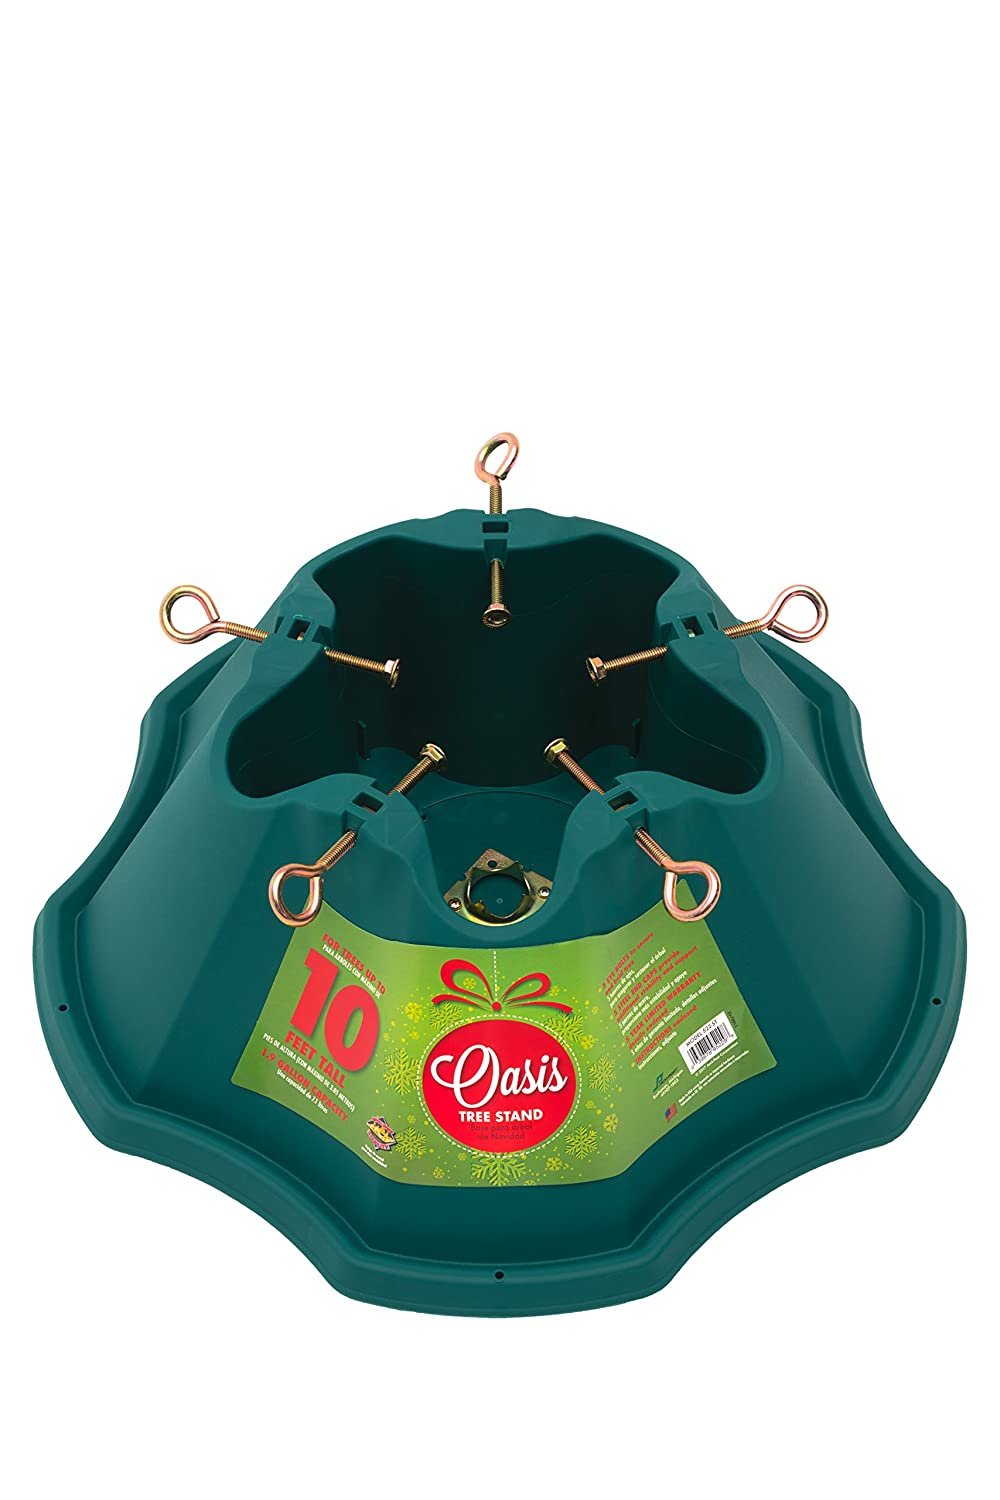 JACK-POST Oasis Christmas Tree Stand, for Trees Up to 10-Feet, 1.5-Gallon Water Capacity